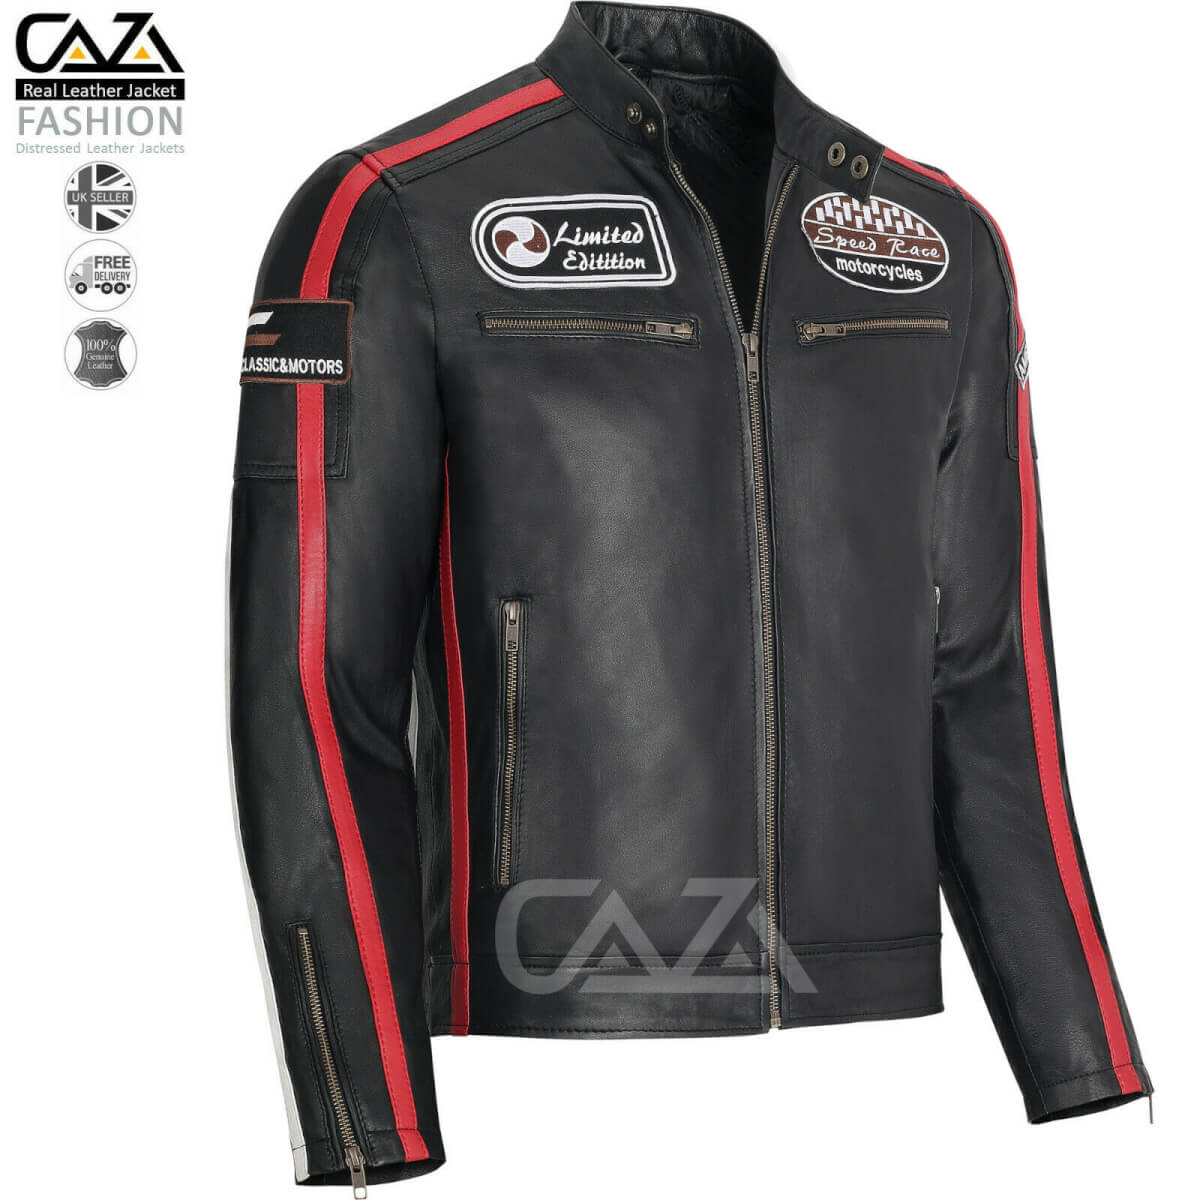 Mens Black Leather Racing Biker Jacket with Badges and stripes Slim Fit Style